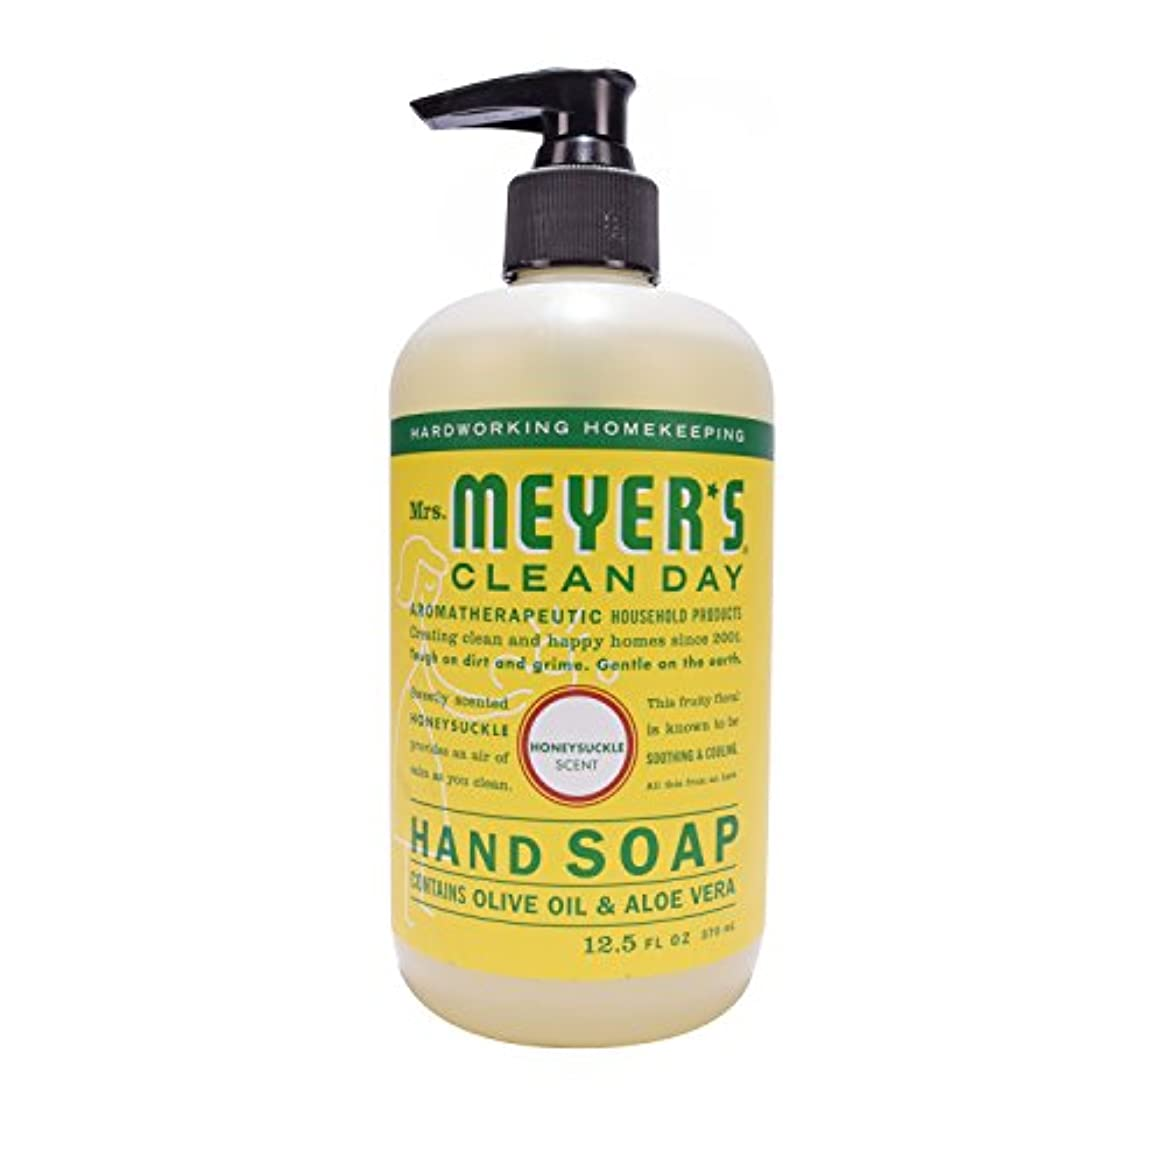 羊飼いグラムこっそりMrs. Meyer's Clean Day Hand Soap Liquid, Honeysuckle, 12.5-Fluid Ounce Bottles by Mrs. Meyer's Clean Day